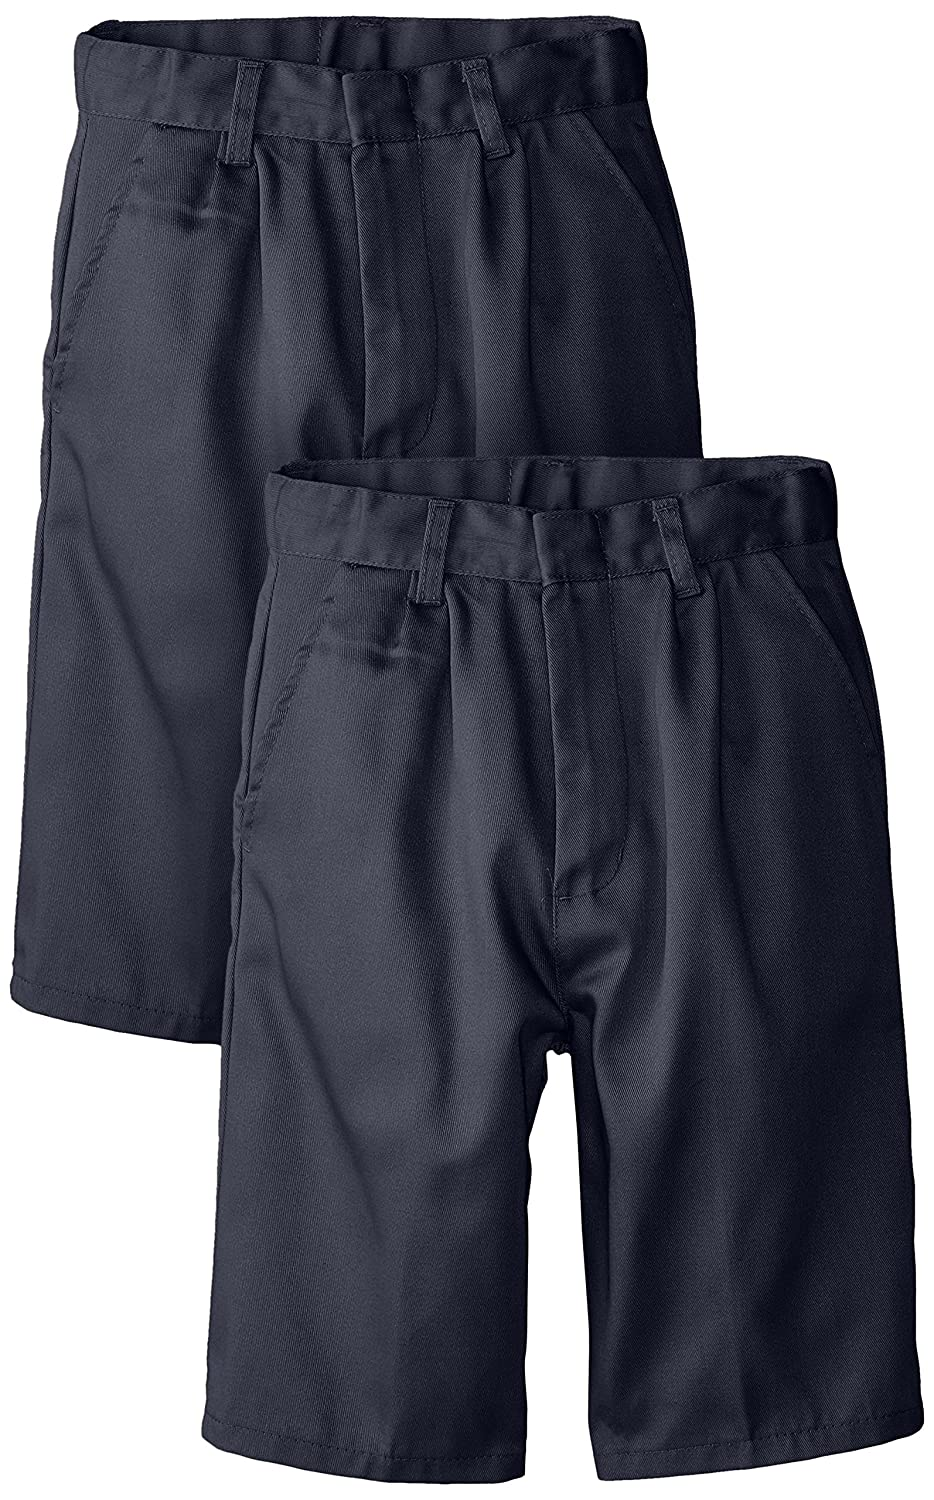 Genuine Boys' 2 Pack Short More Styles Available